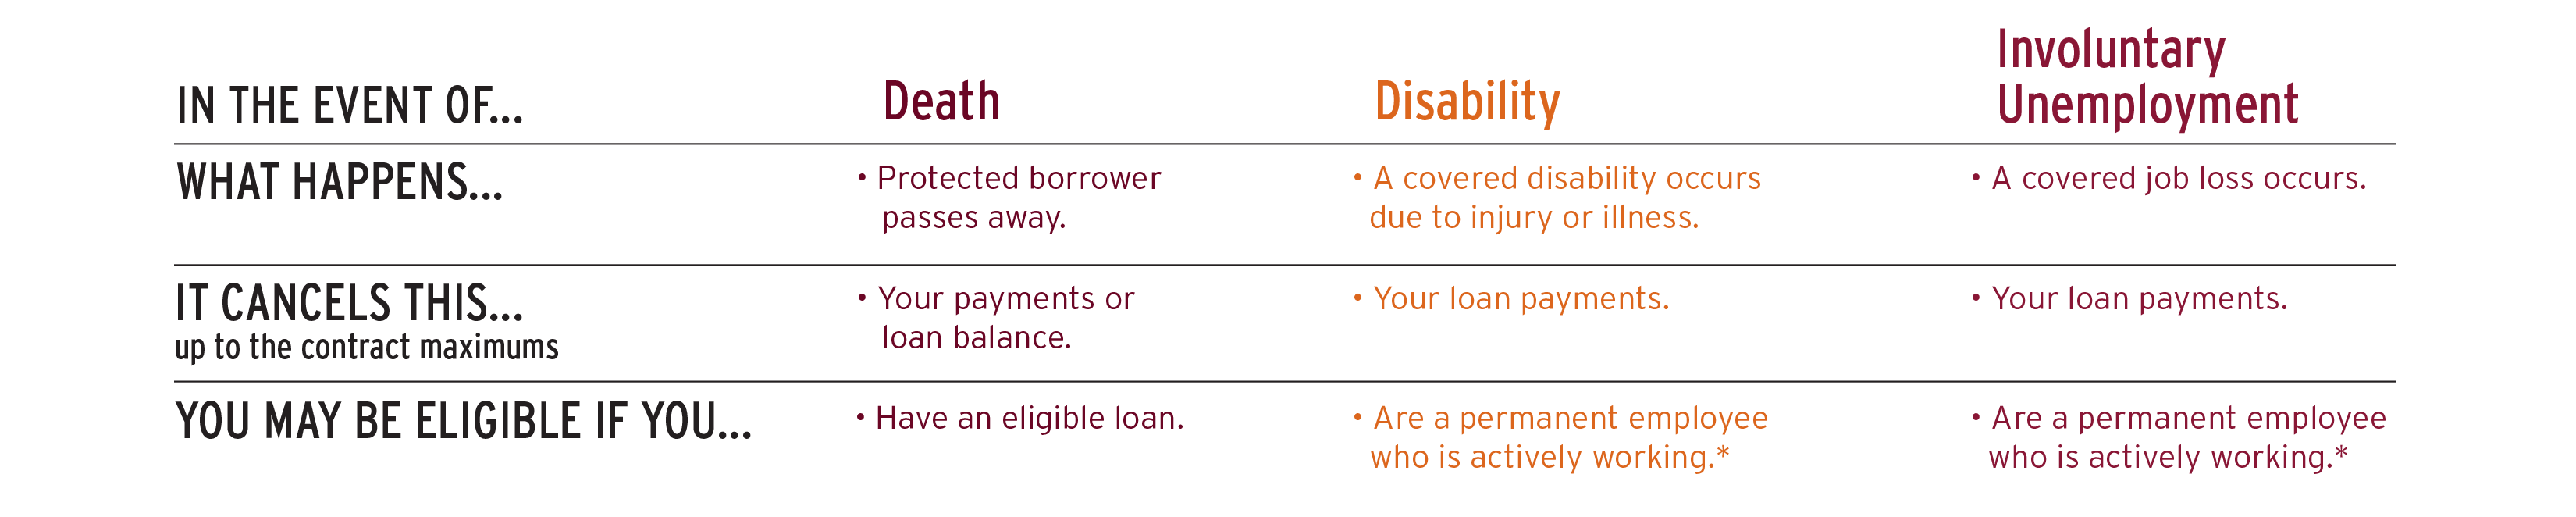 Debt Protection Image